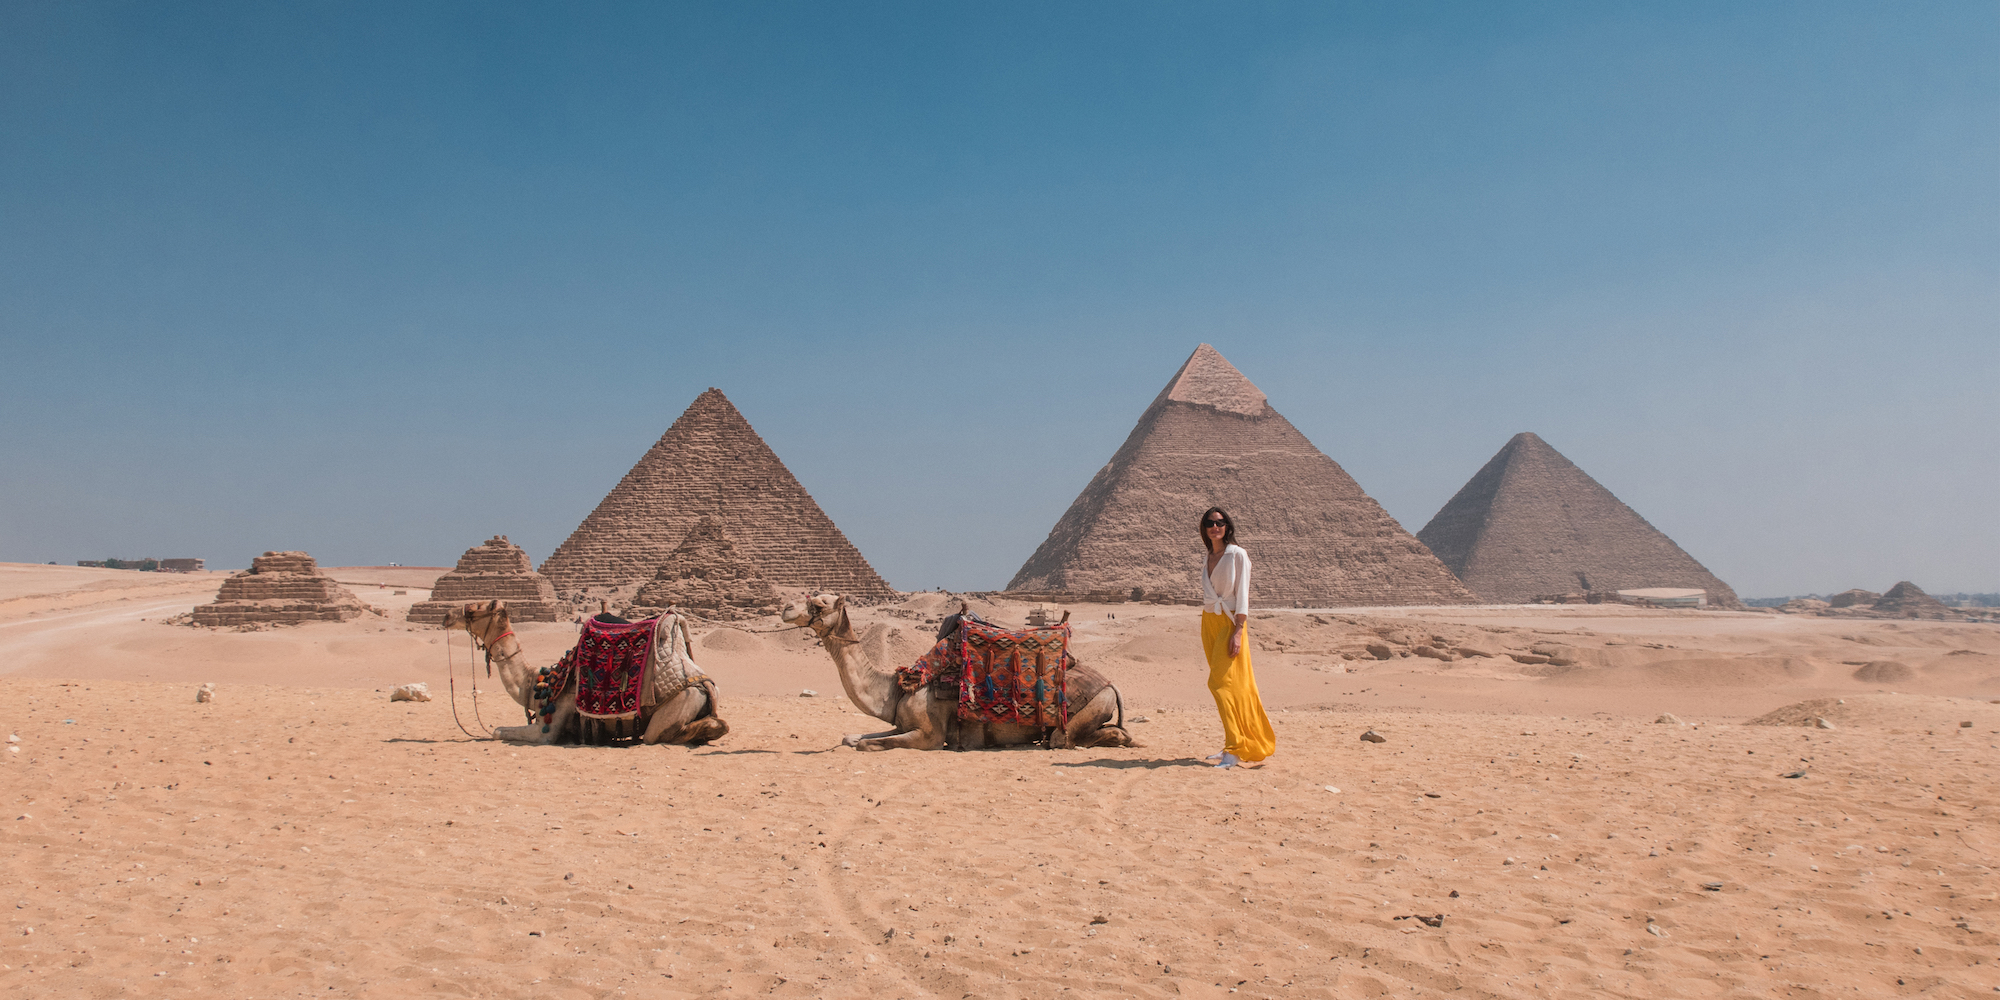 Carina Otero at the Great Pyramids in Egypt